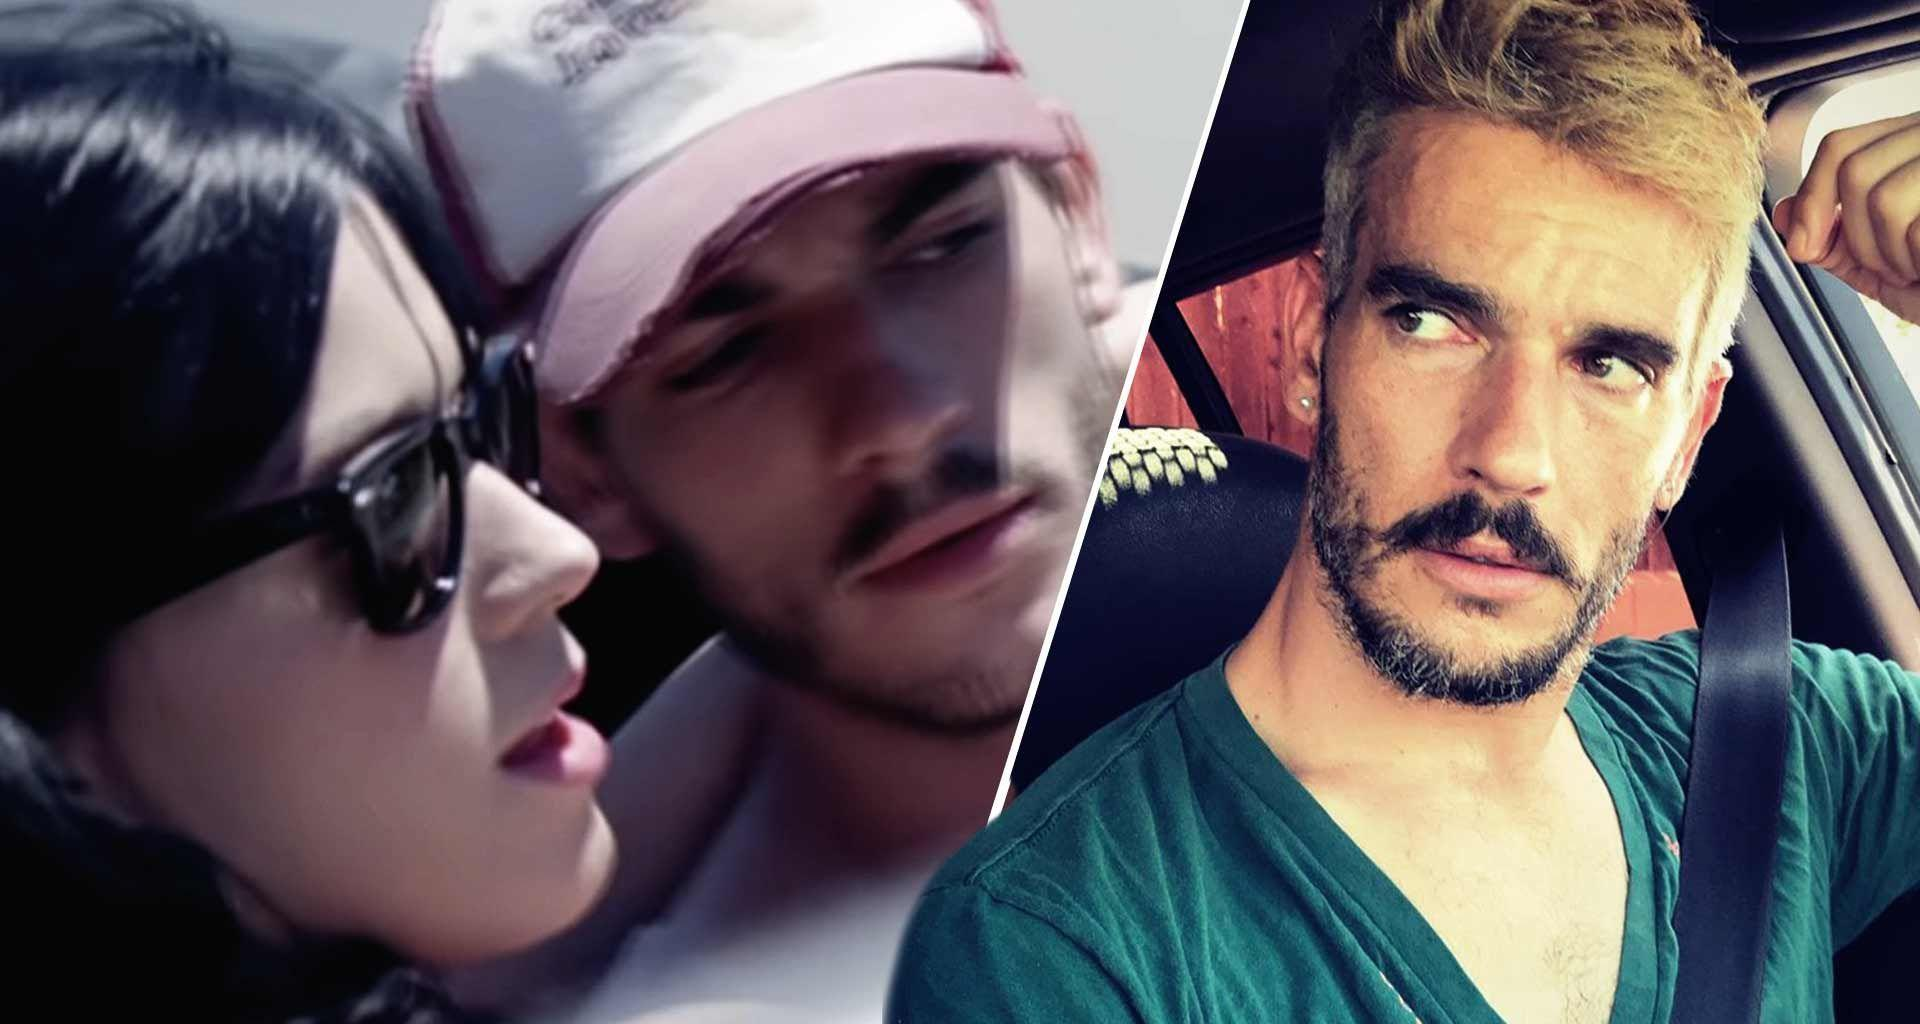 Former Music Video Star Josh Kloss Accuses Katy Perry Of Sexual Assault